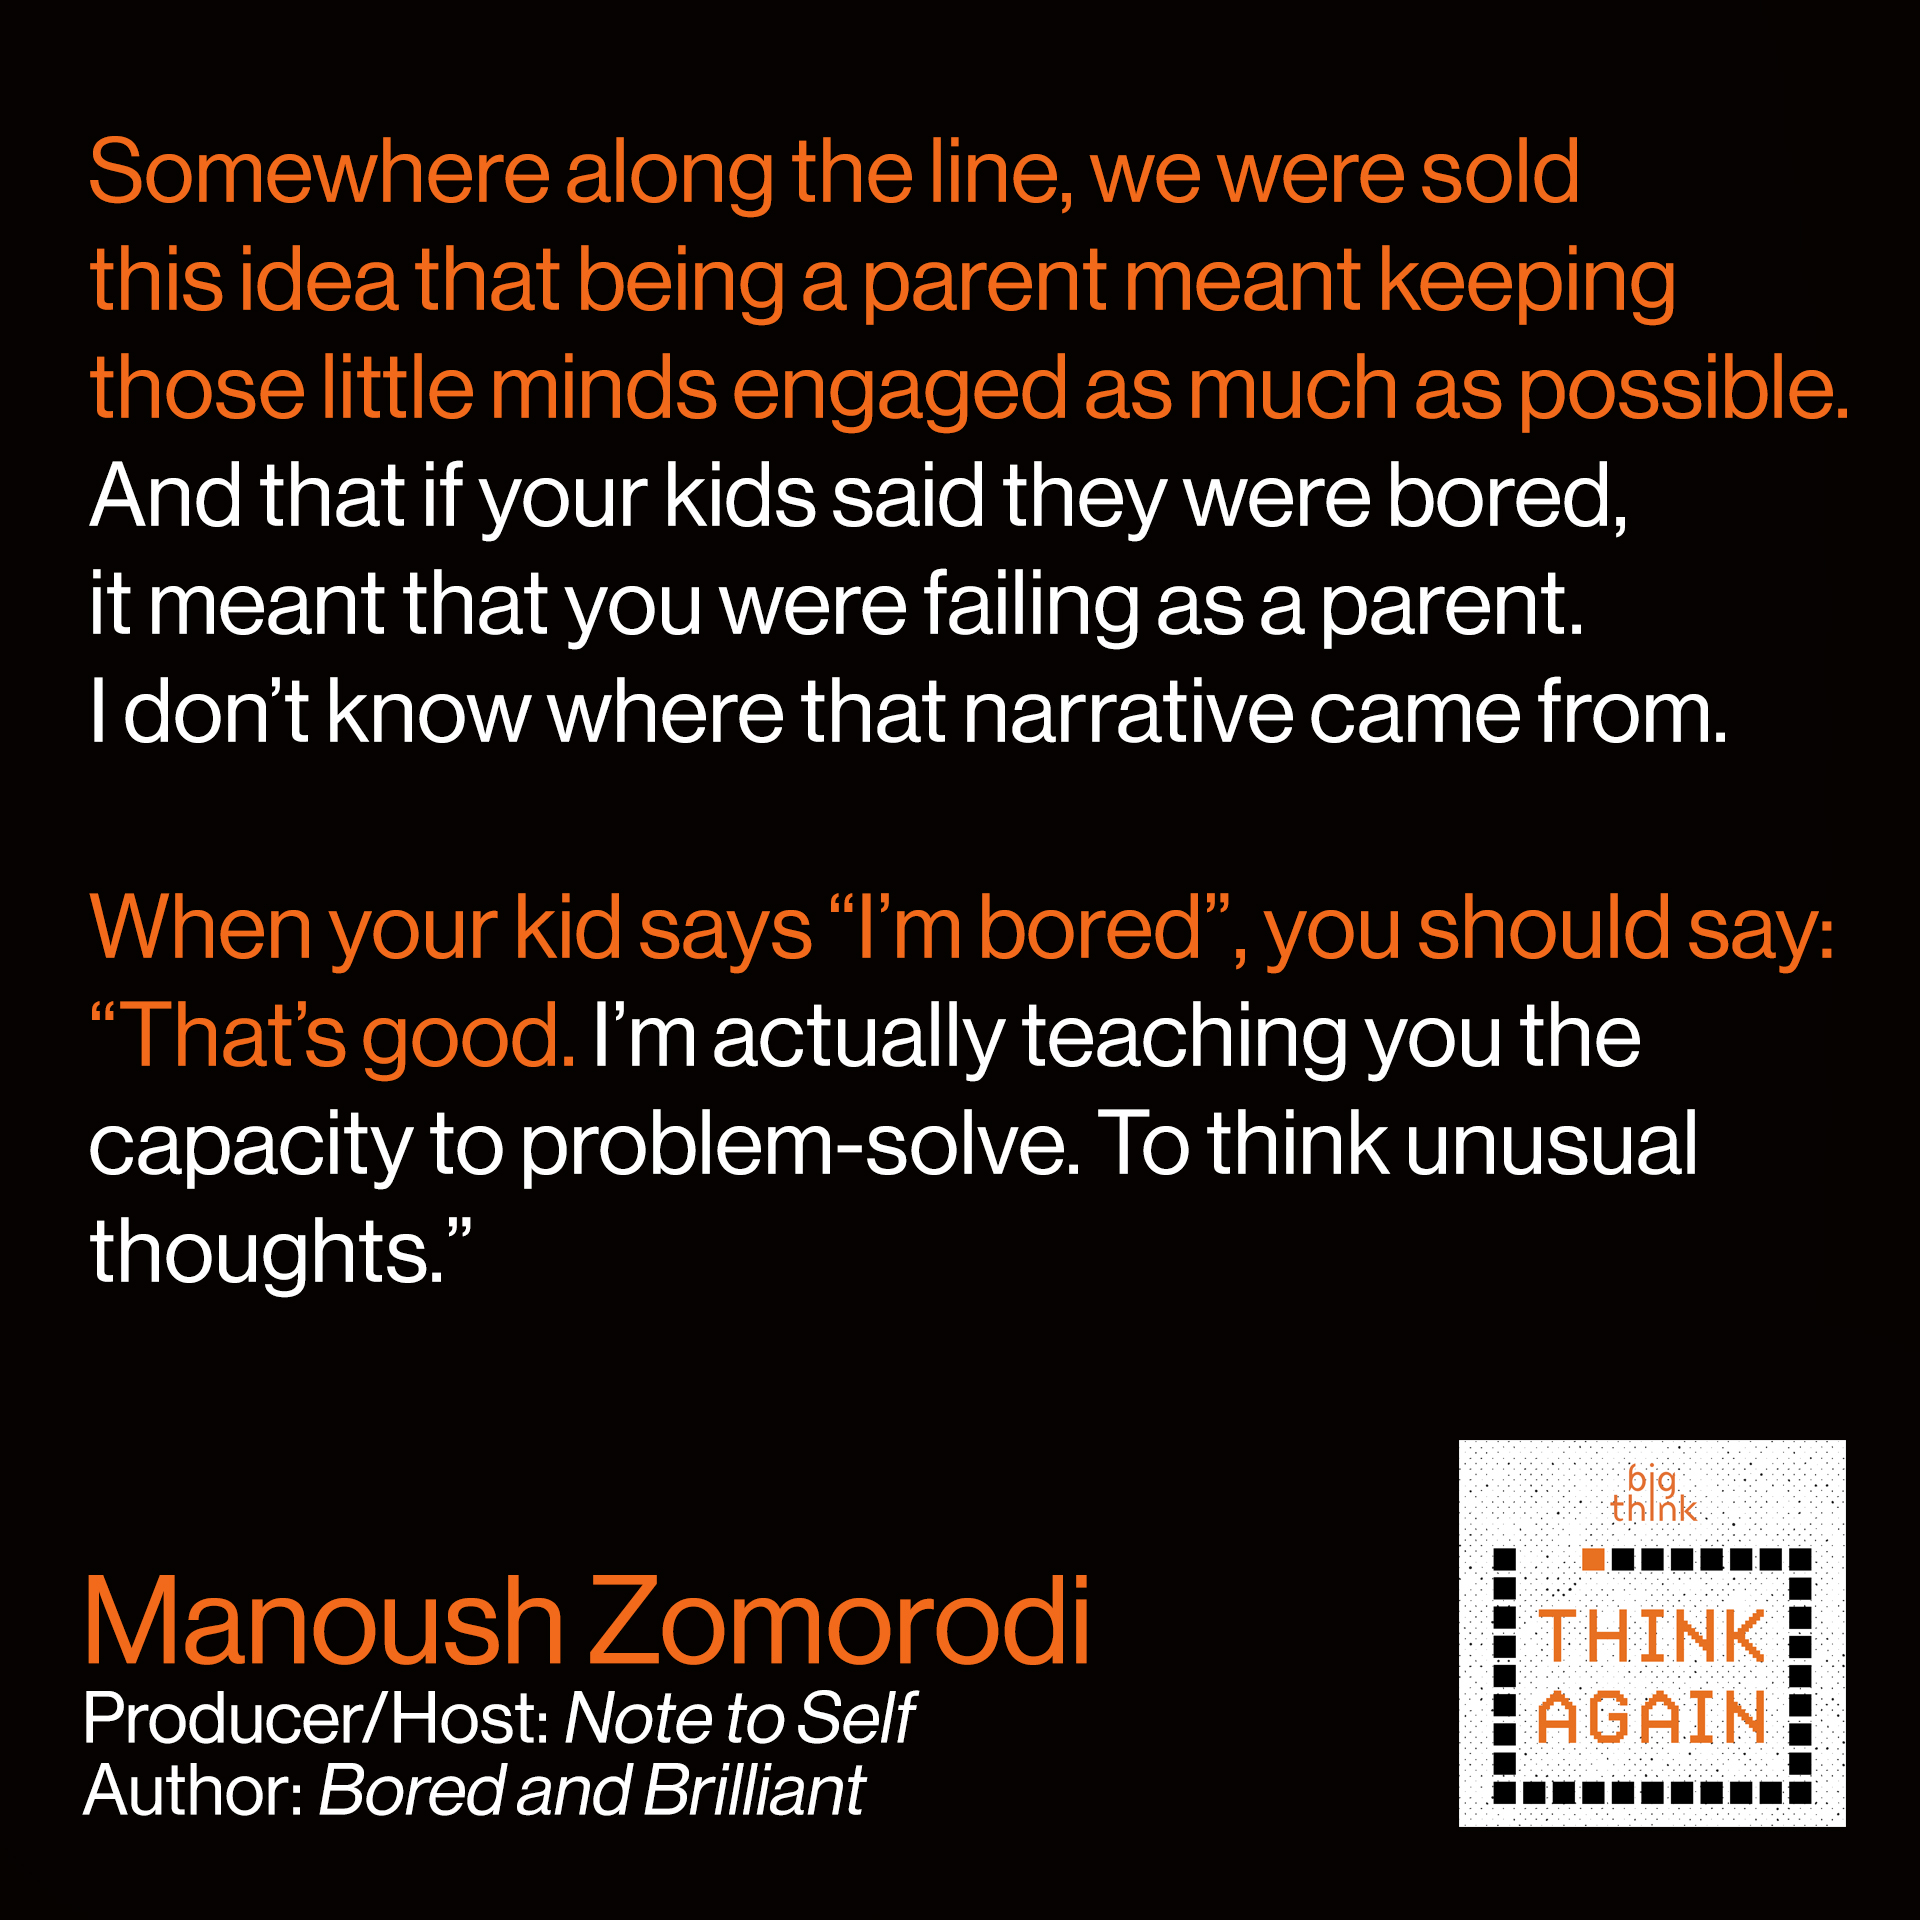 "Manoush Zomorodi Quote: Somewhere along the line, we were sold this idea  that being a parent meant keeping those little minds  engaged as much as possible. And that if your kids said  they were bored, it meant that you were failing as a parent.  I don't know where that narrative came from.   When your kid says ""I'm bored"" you should say:  ""That's good. I'm actually teaching you the capacity to  problem-solve. To think unusual thoughts."""